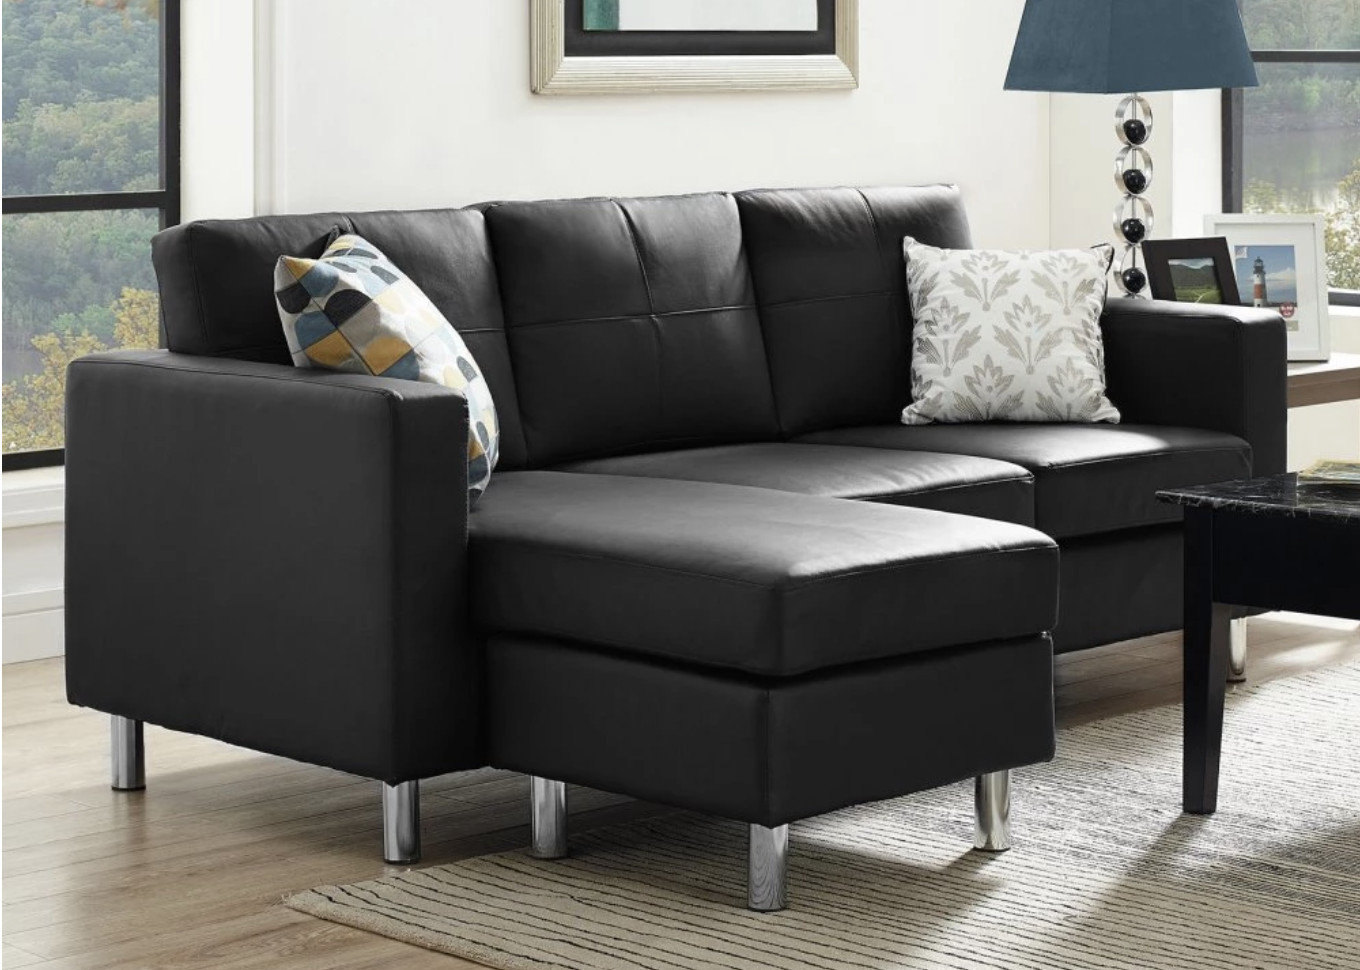 Best ideas about Mini Sectional Sofa . Save or Pin 6 Types of Small Sectional Sofas for Small Spaces Now.